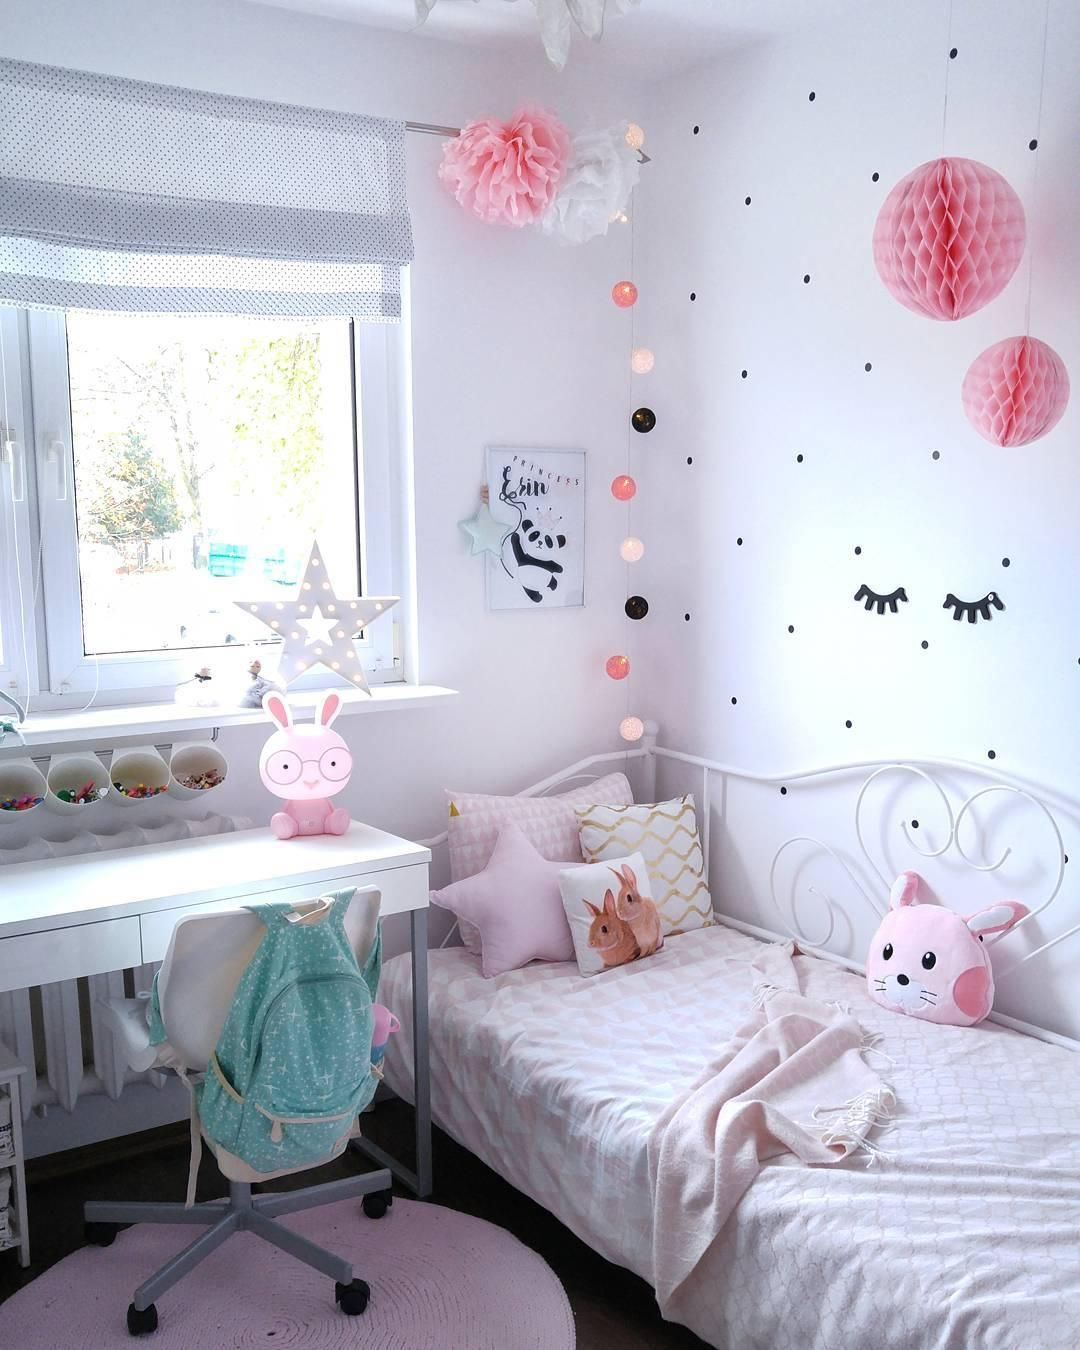 wandschmuck set confetti dots 16 tlg kinderzimmer inspirationen pinterest kinderzimmer. Black Bedroom Furniture Sets. Home Design Ideas